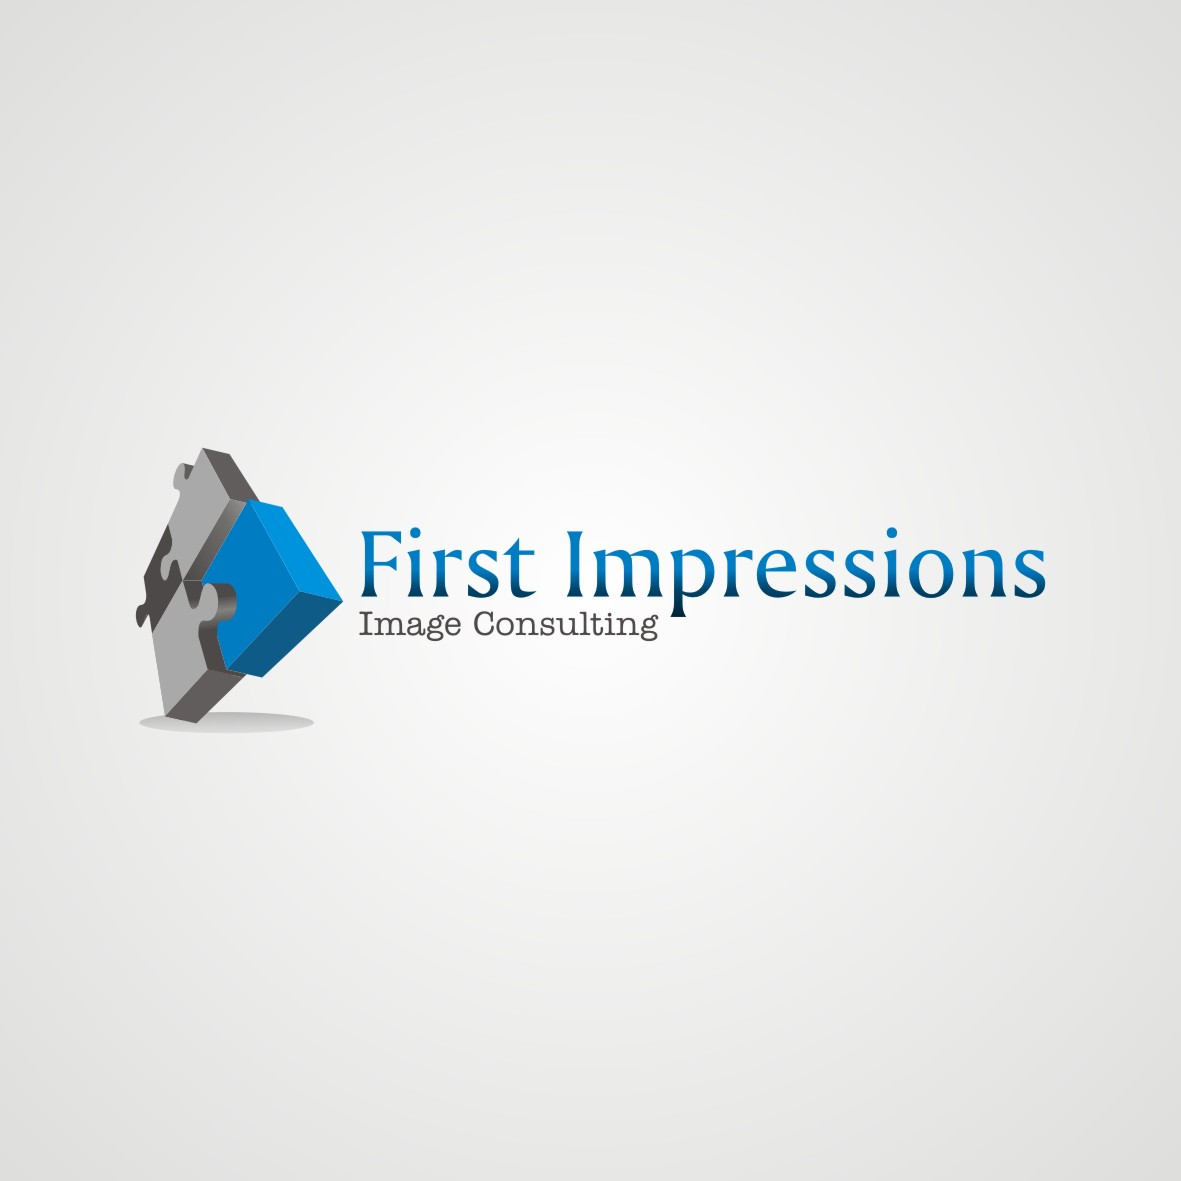 Logo Design by arteo_design - Entry No. 48 in the Logo Design Contest First Impressions Image Consulting Logo Design.